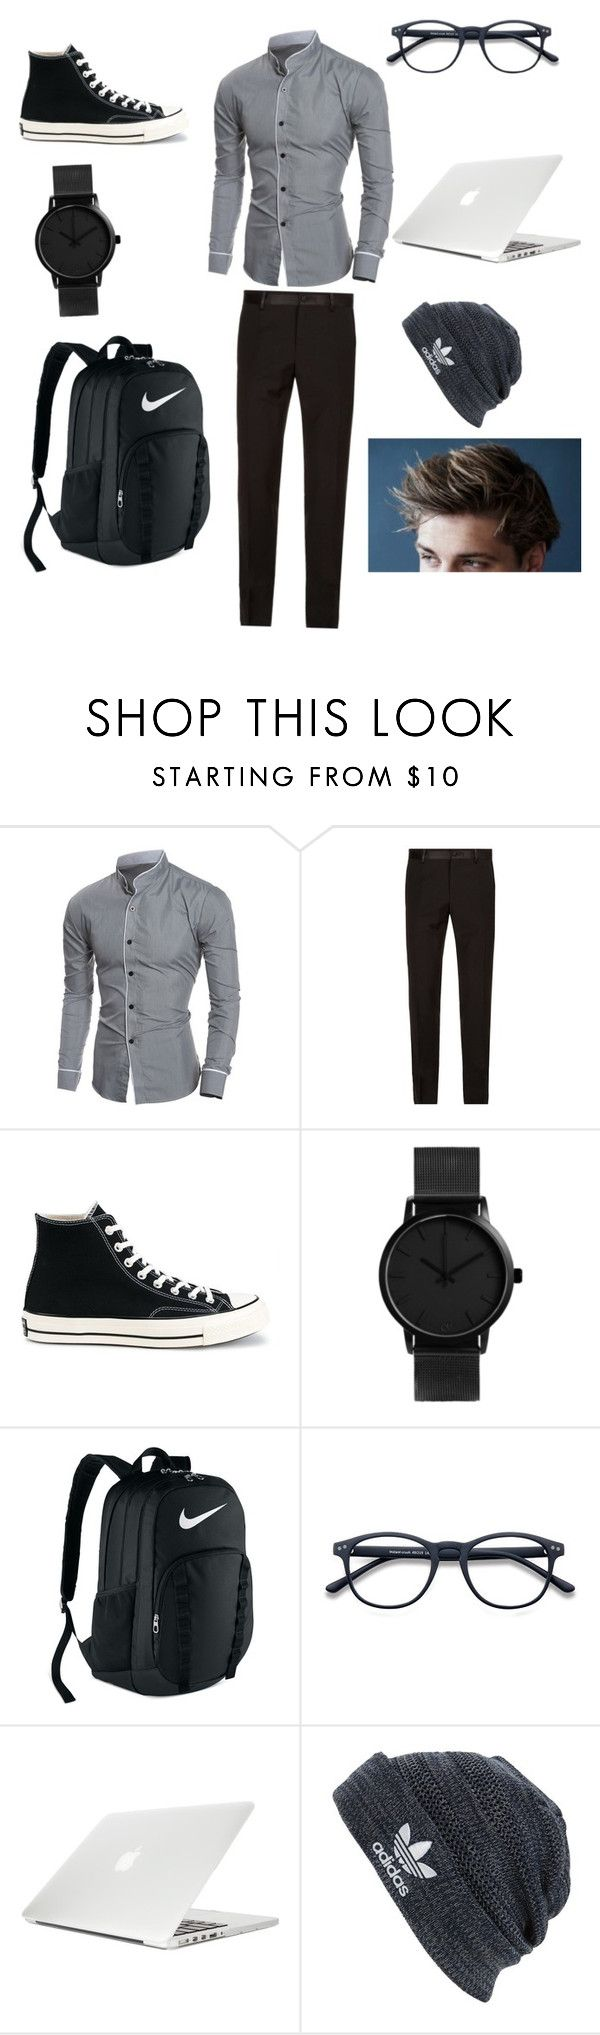 """""""College student style."""" by camille-lajoie on Polyvore featuring Dolce&Gabbana, Converse, NIKE, Moshi, adidas, men's fashion and menswear"""